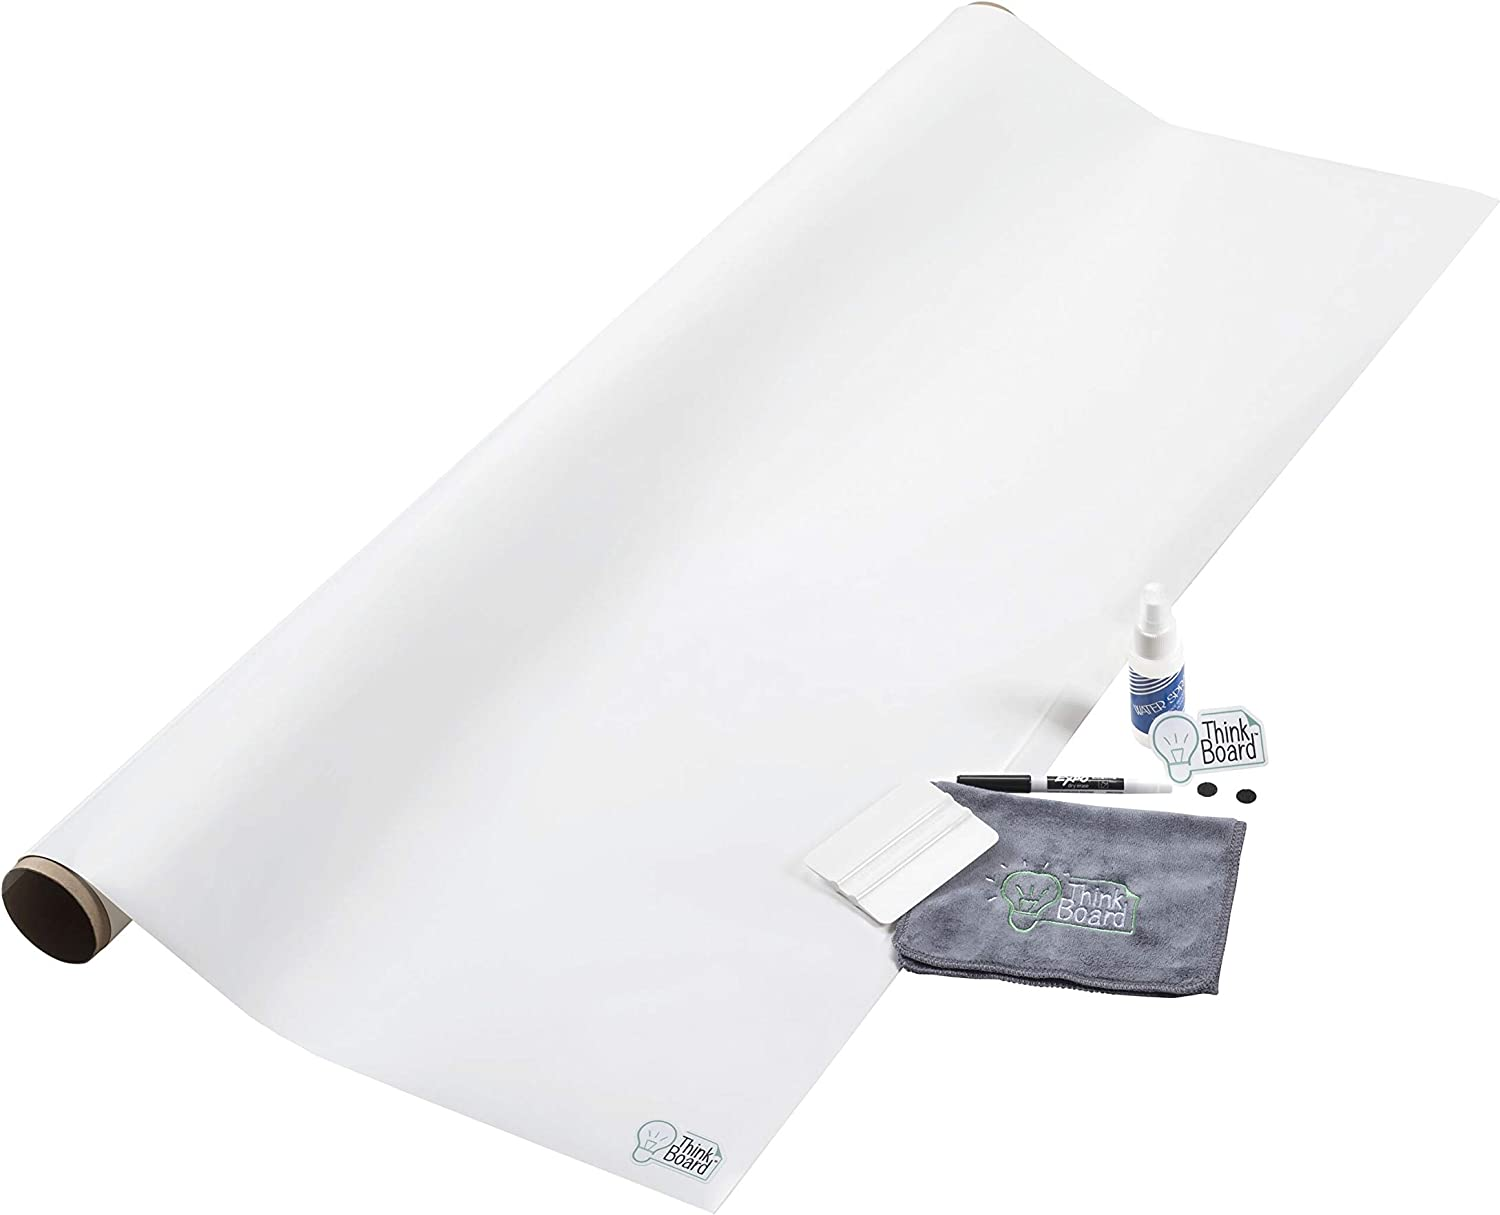 Think Board Premium - 4'x12' White – Ultra-Removable Adhesive Whiteboard Wall Sticker - Peel and Stick Dry Erase Board for Office, Home, & Classroom - Erasable Stain-Proof Message Board (48